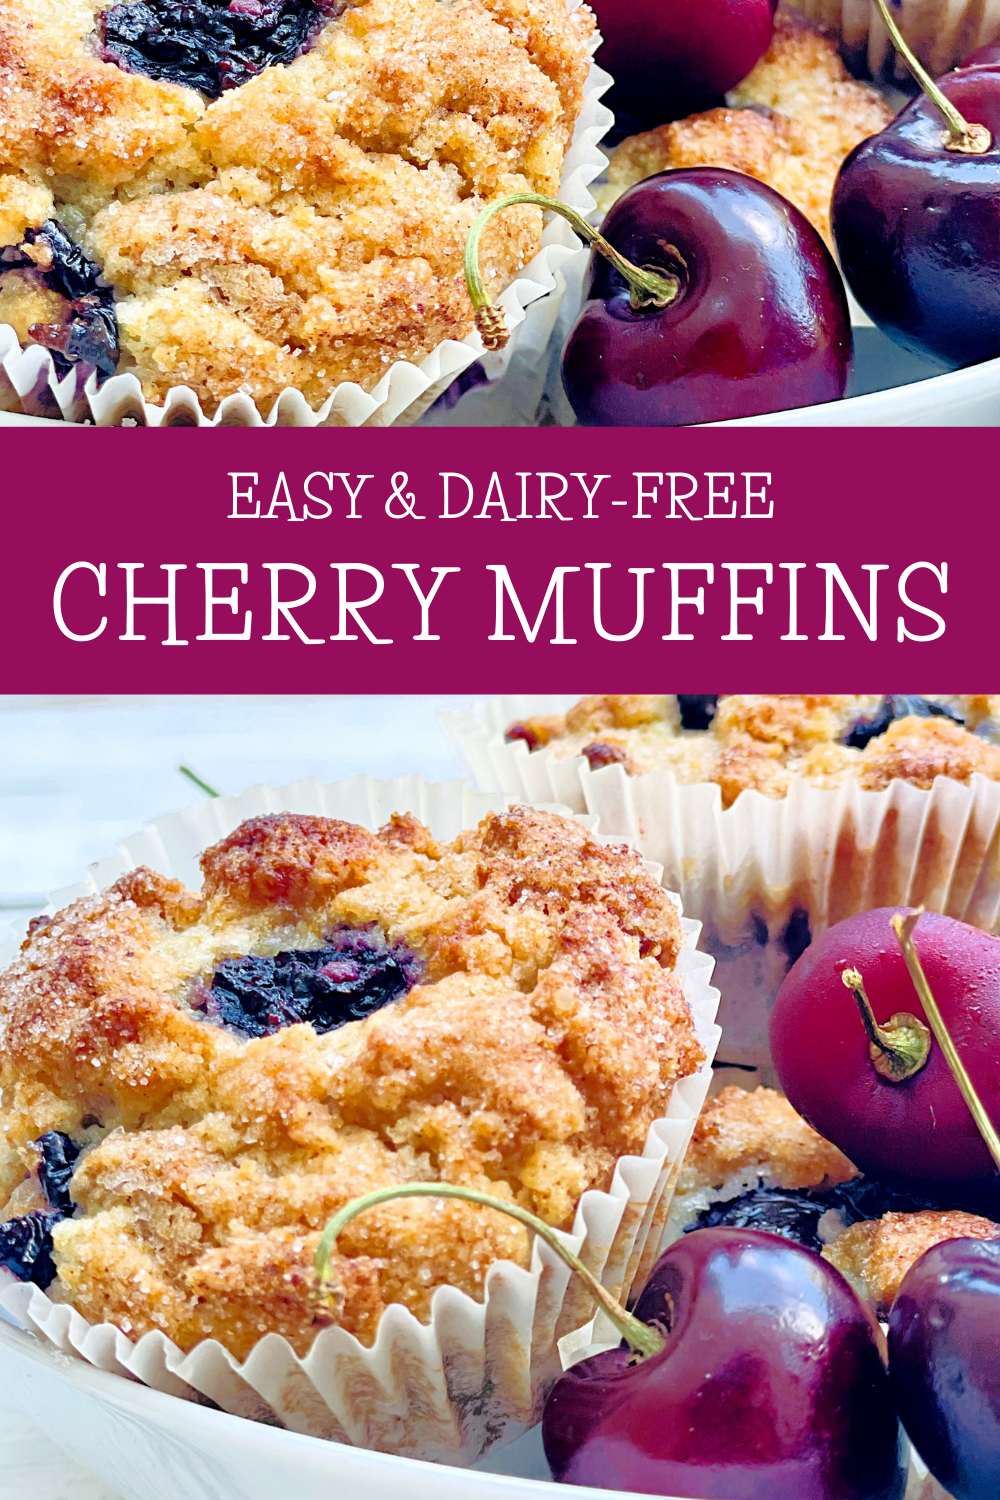 Cherry Muffins ~ Sweet, simple, and bursting with the flavor of fresh cherries! These quick and easy muffins are perfect for breakfast, brunch, afternoon snack, or dessert!  via @thiswifecooks